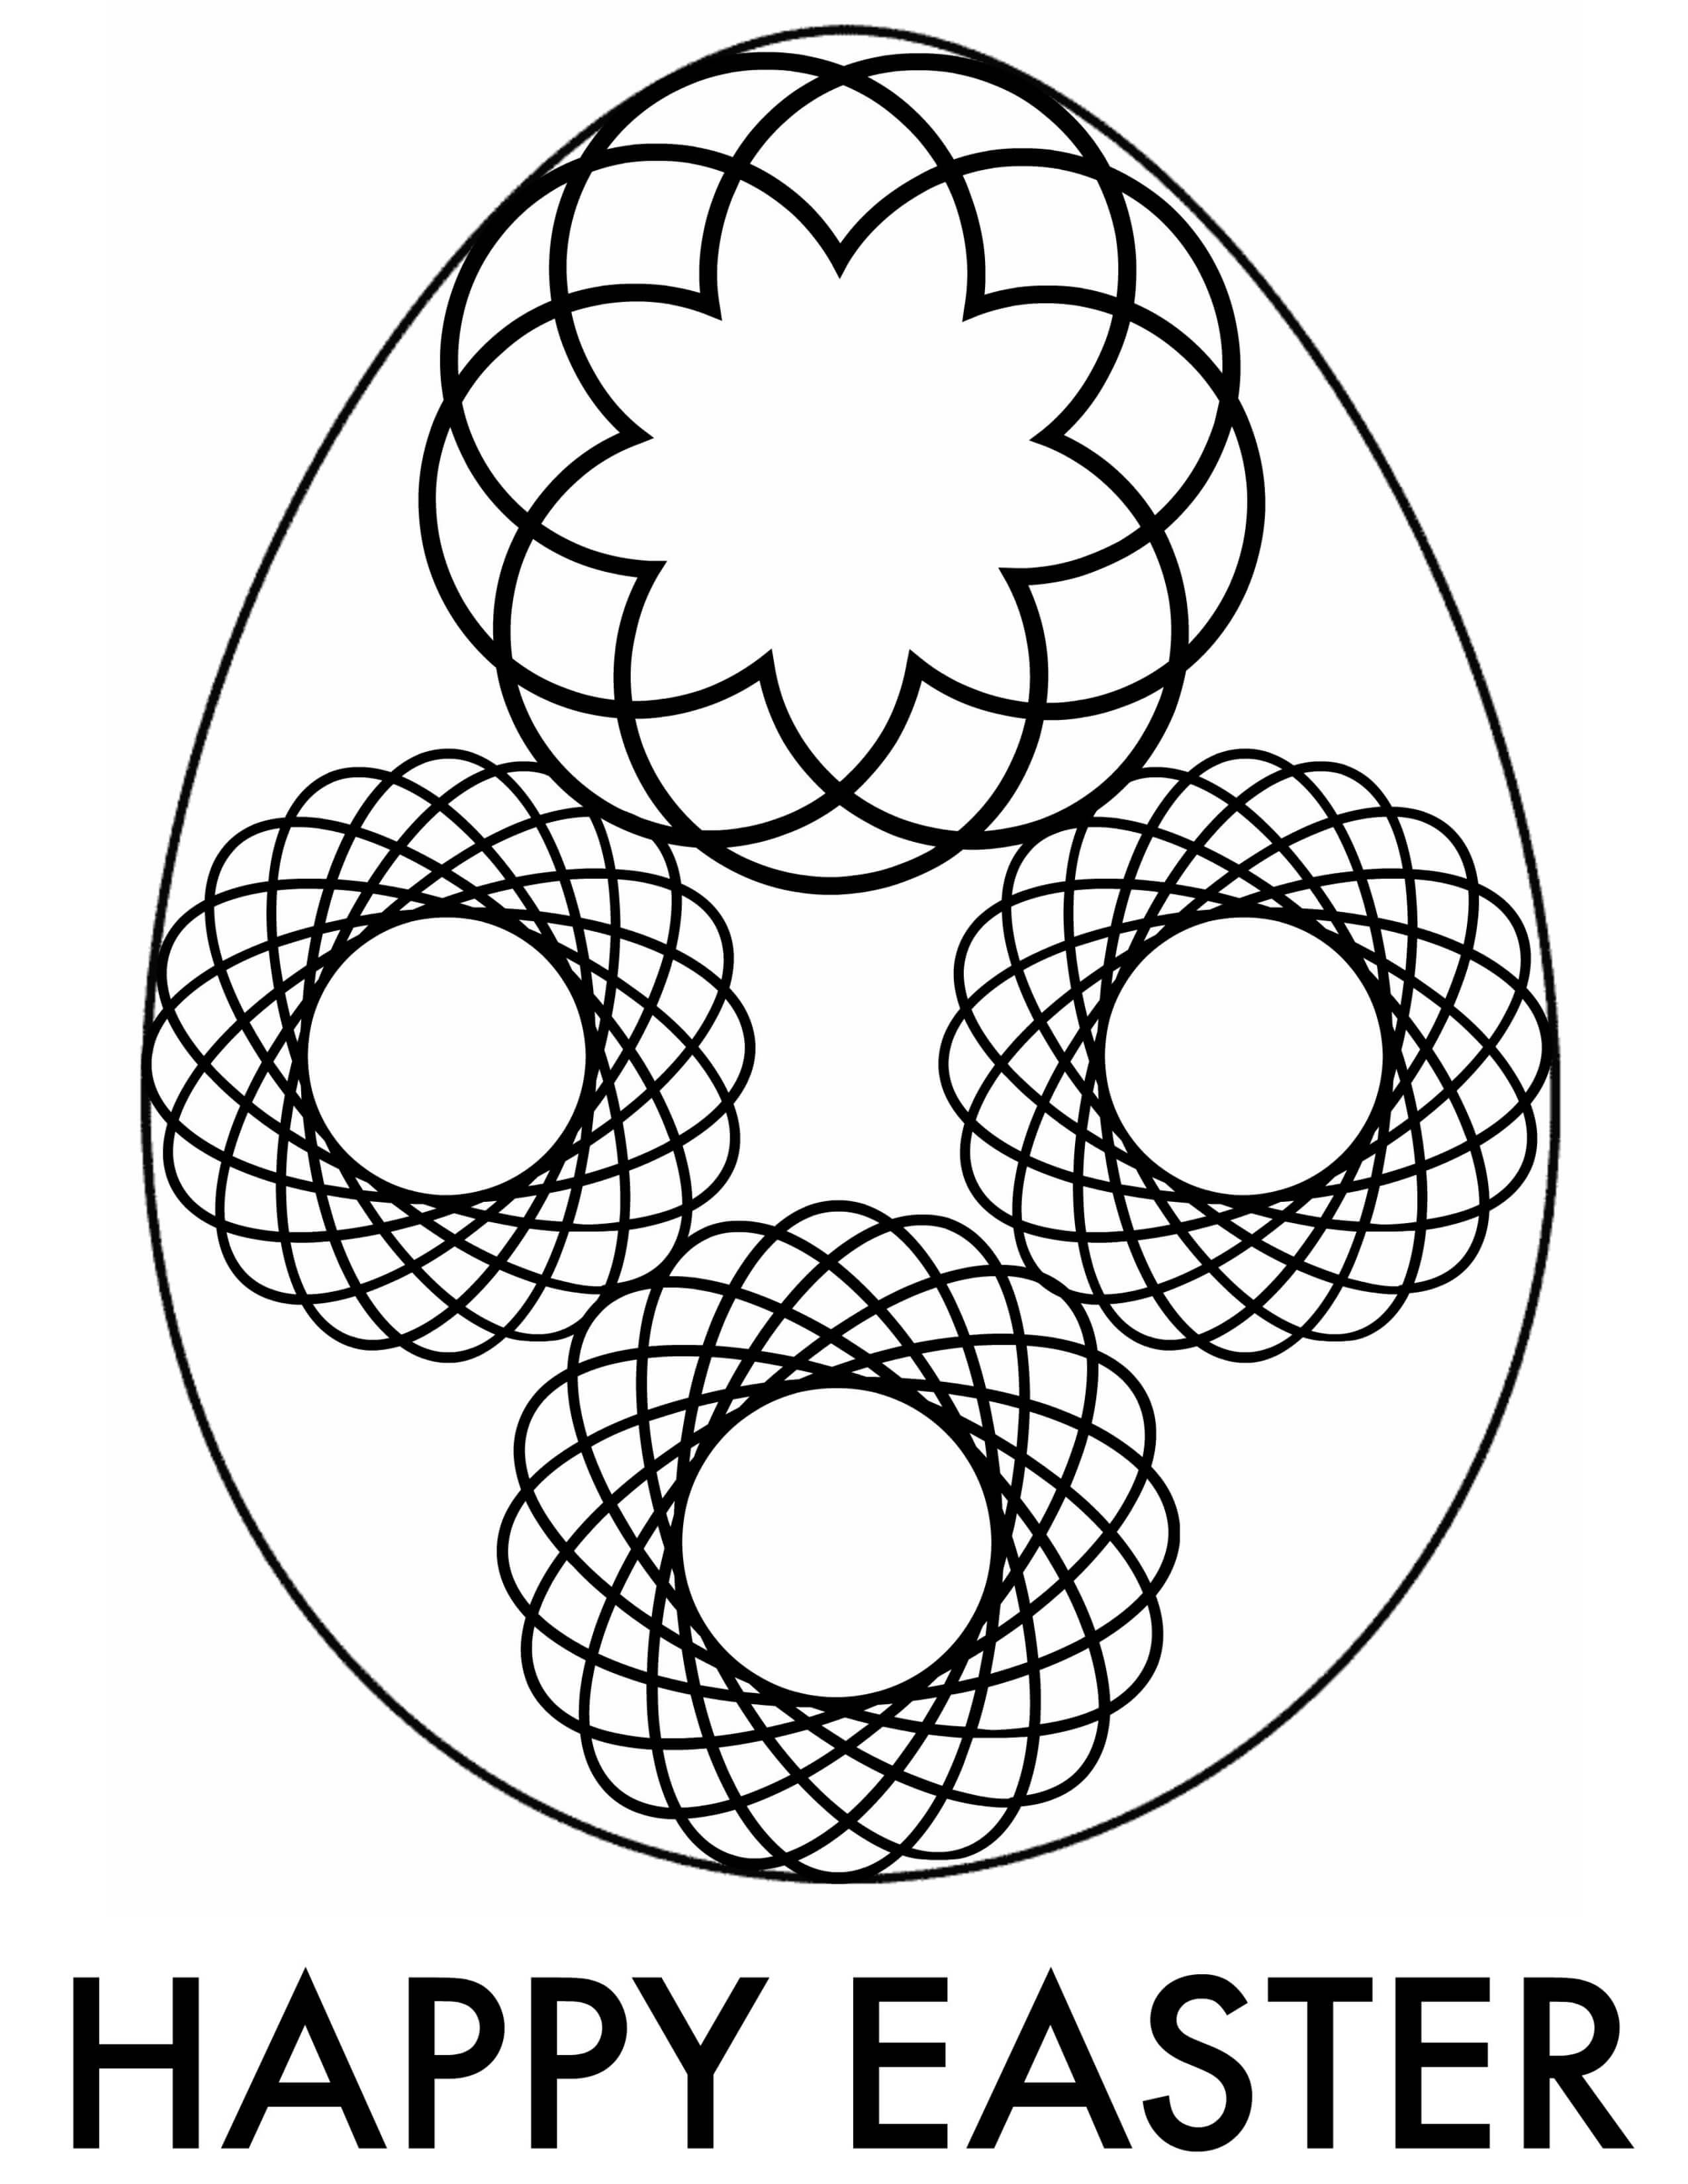 Easter Egg Coloring Page 3